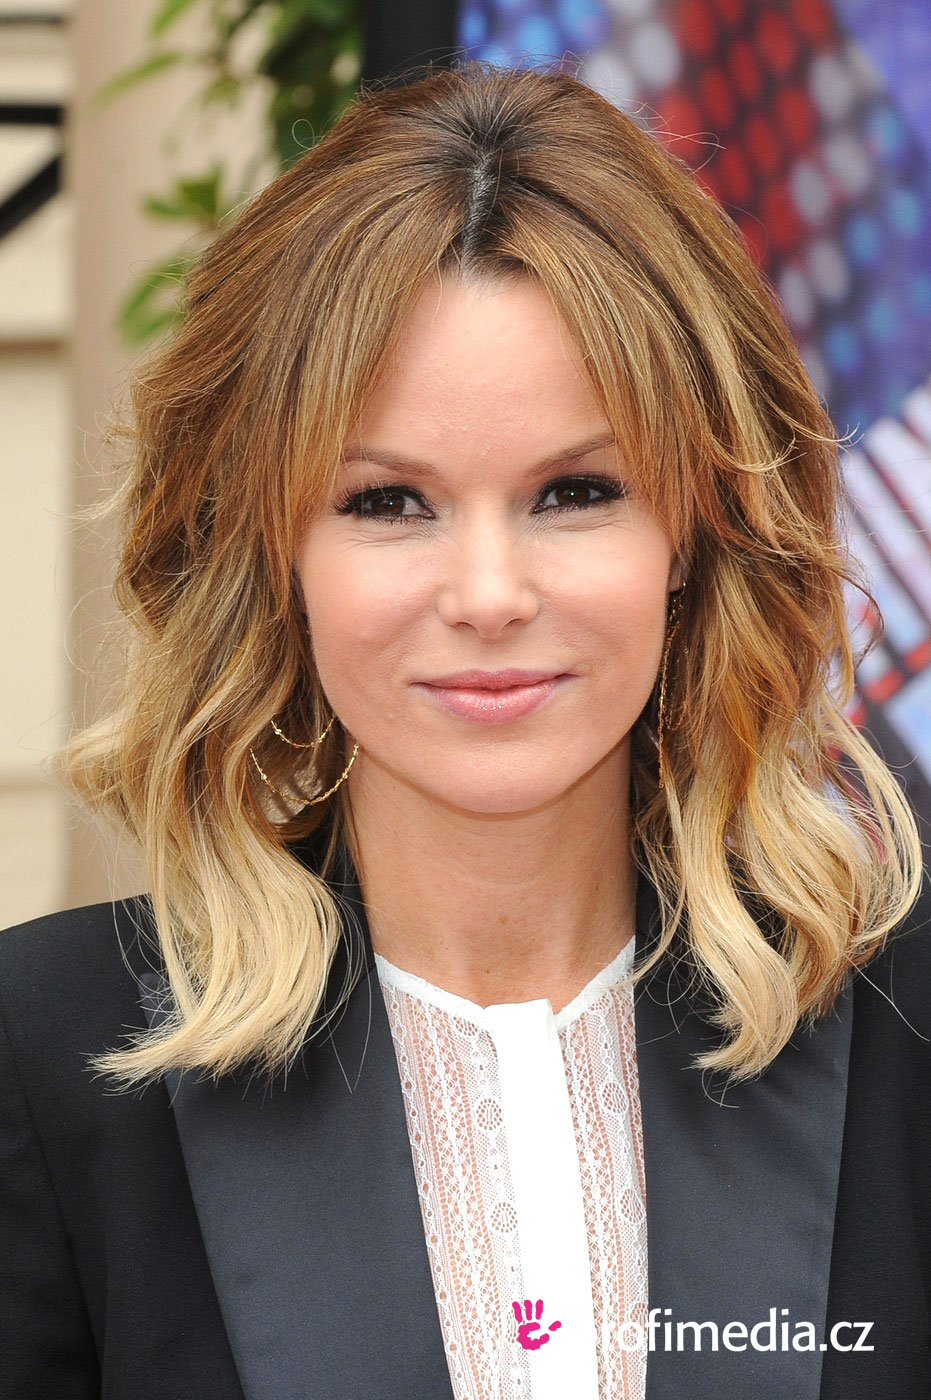 Amanda Holden Bob - Short Hairstyles Lookbook - StyleBistro